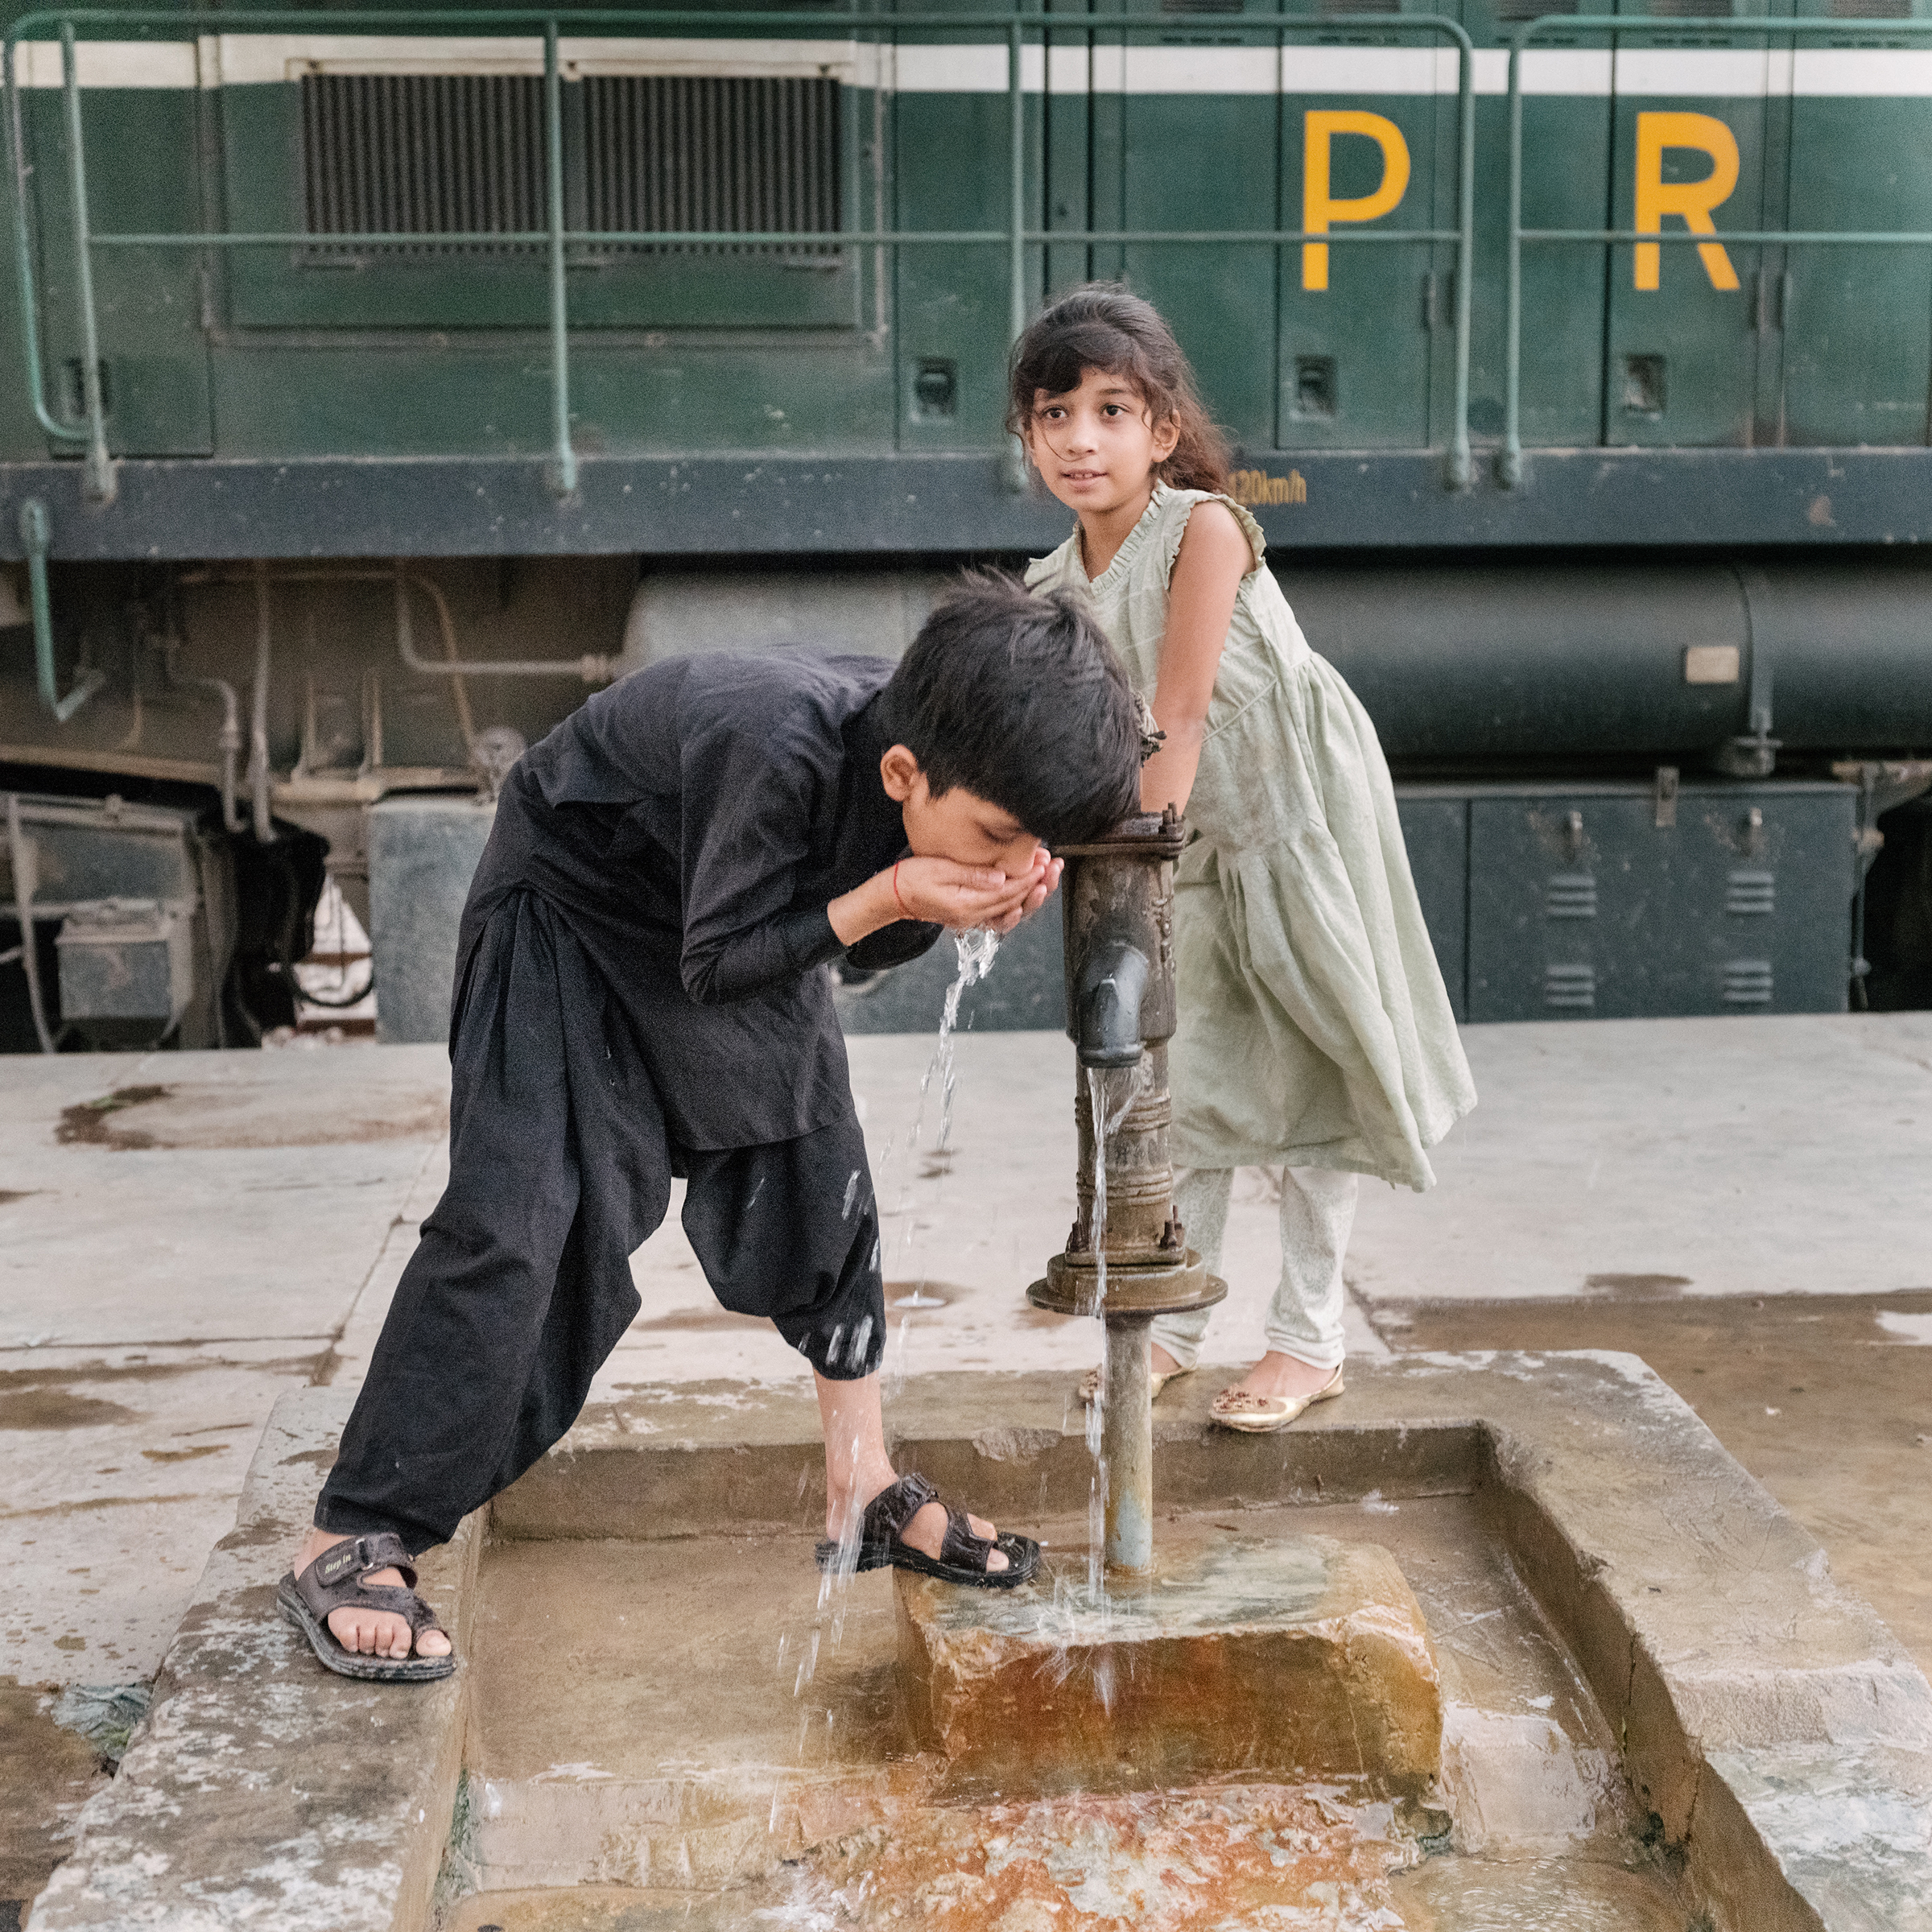 A brother and sister have a drink of water during an evening outing at the train station on June 28.